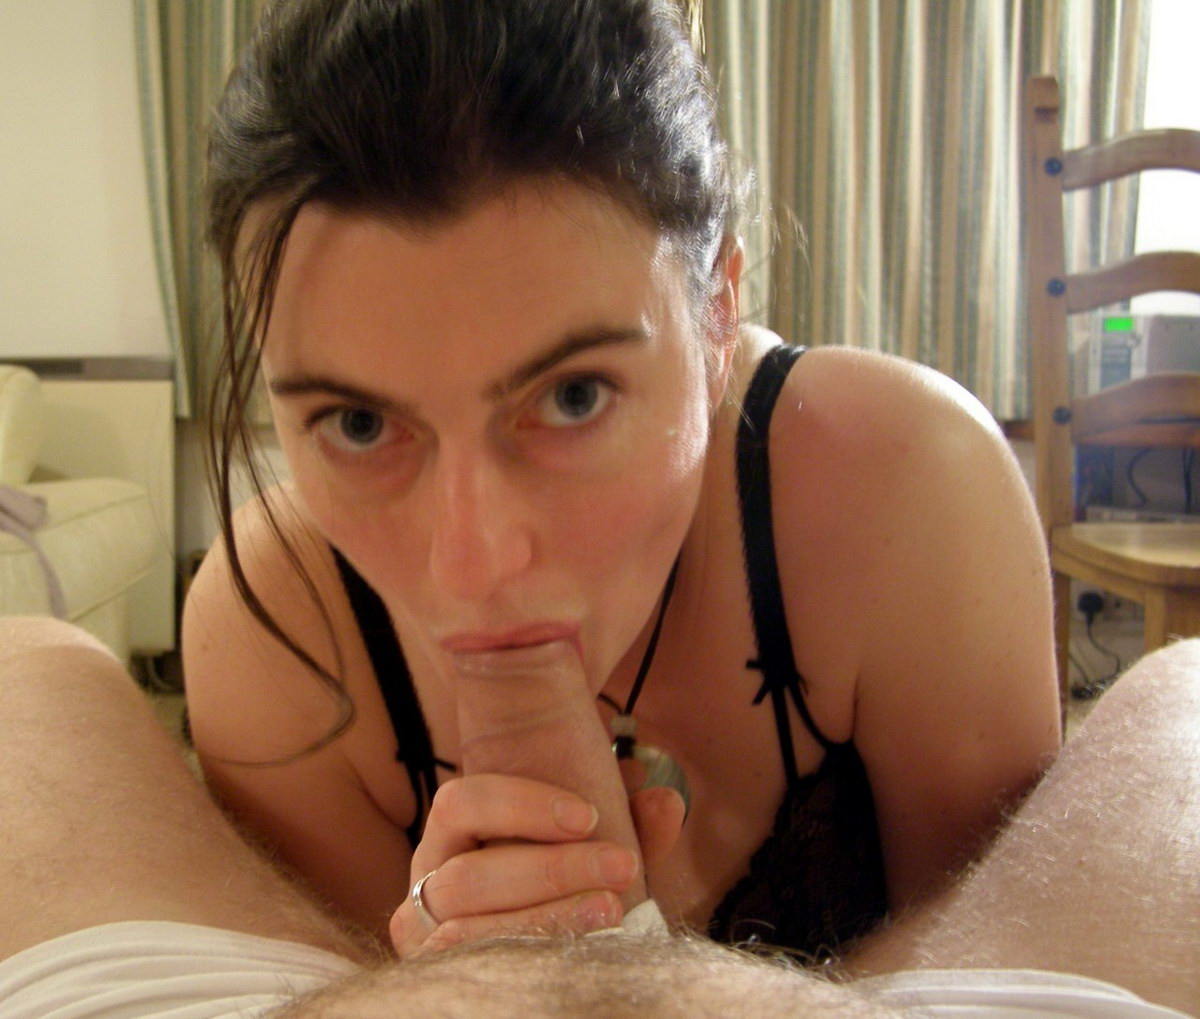 POV blowjob with great eye contact